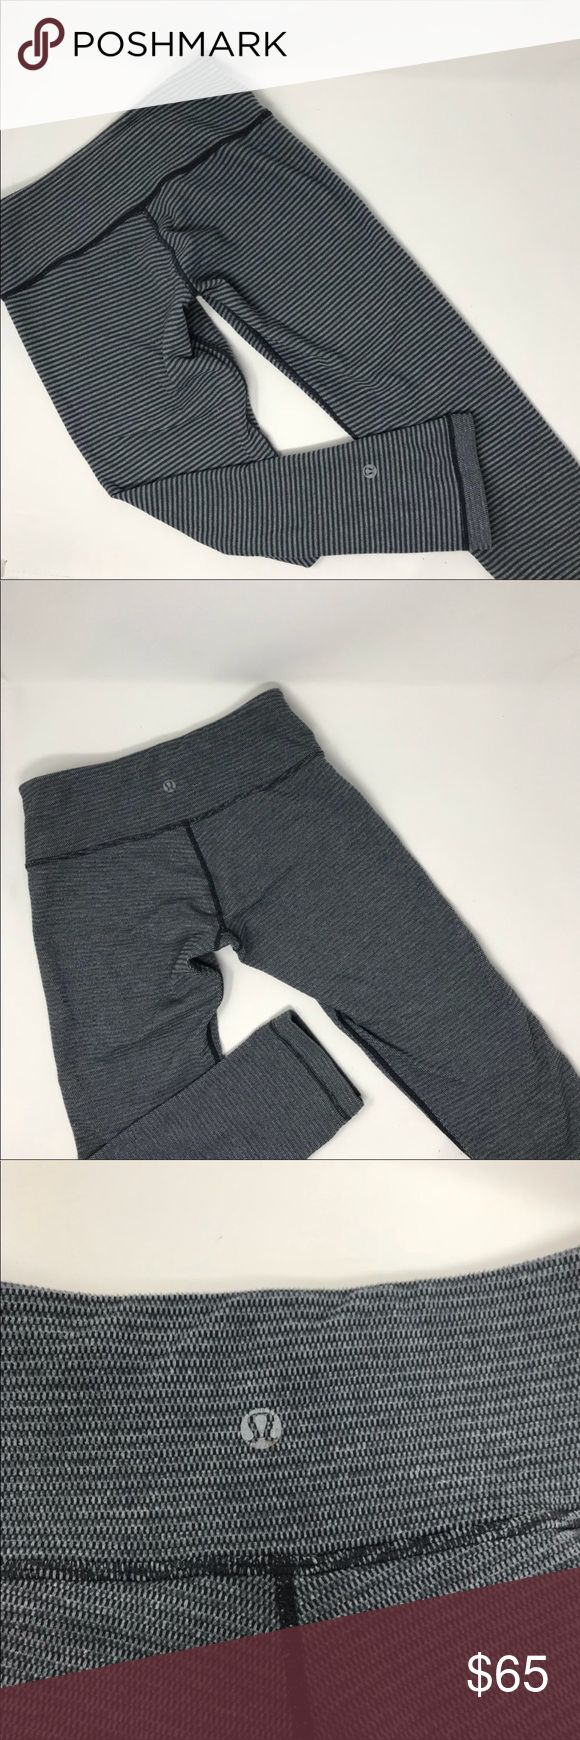 Lululemon REVERSIBLE crop winder under leggings ❌No trades  - ❌ ALL sales are final 💗Be courteous no low balls 💌Reasonable offers accepted 📦 Ships out same day or next - depending what time of day you ordered ⬇️Have a question? Leave a comment 😀  Product Info📝: 🔗Color: Black + Gray 🔗No damage 🔗Reversible 🔗Black stitching lululemon athletica Pants Track Pants & Joggers